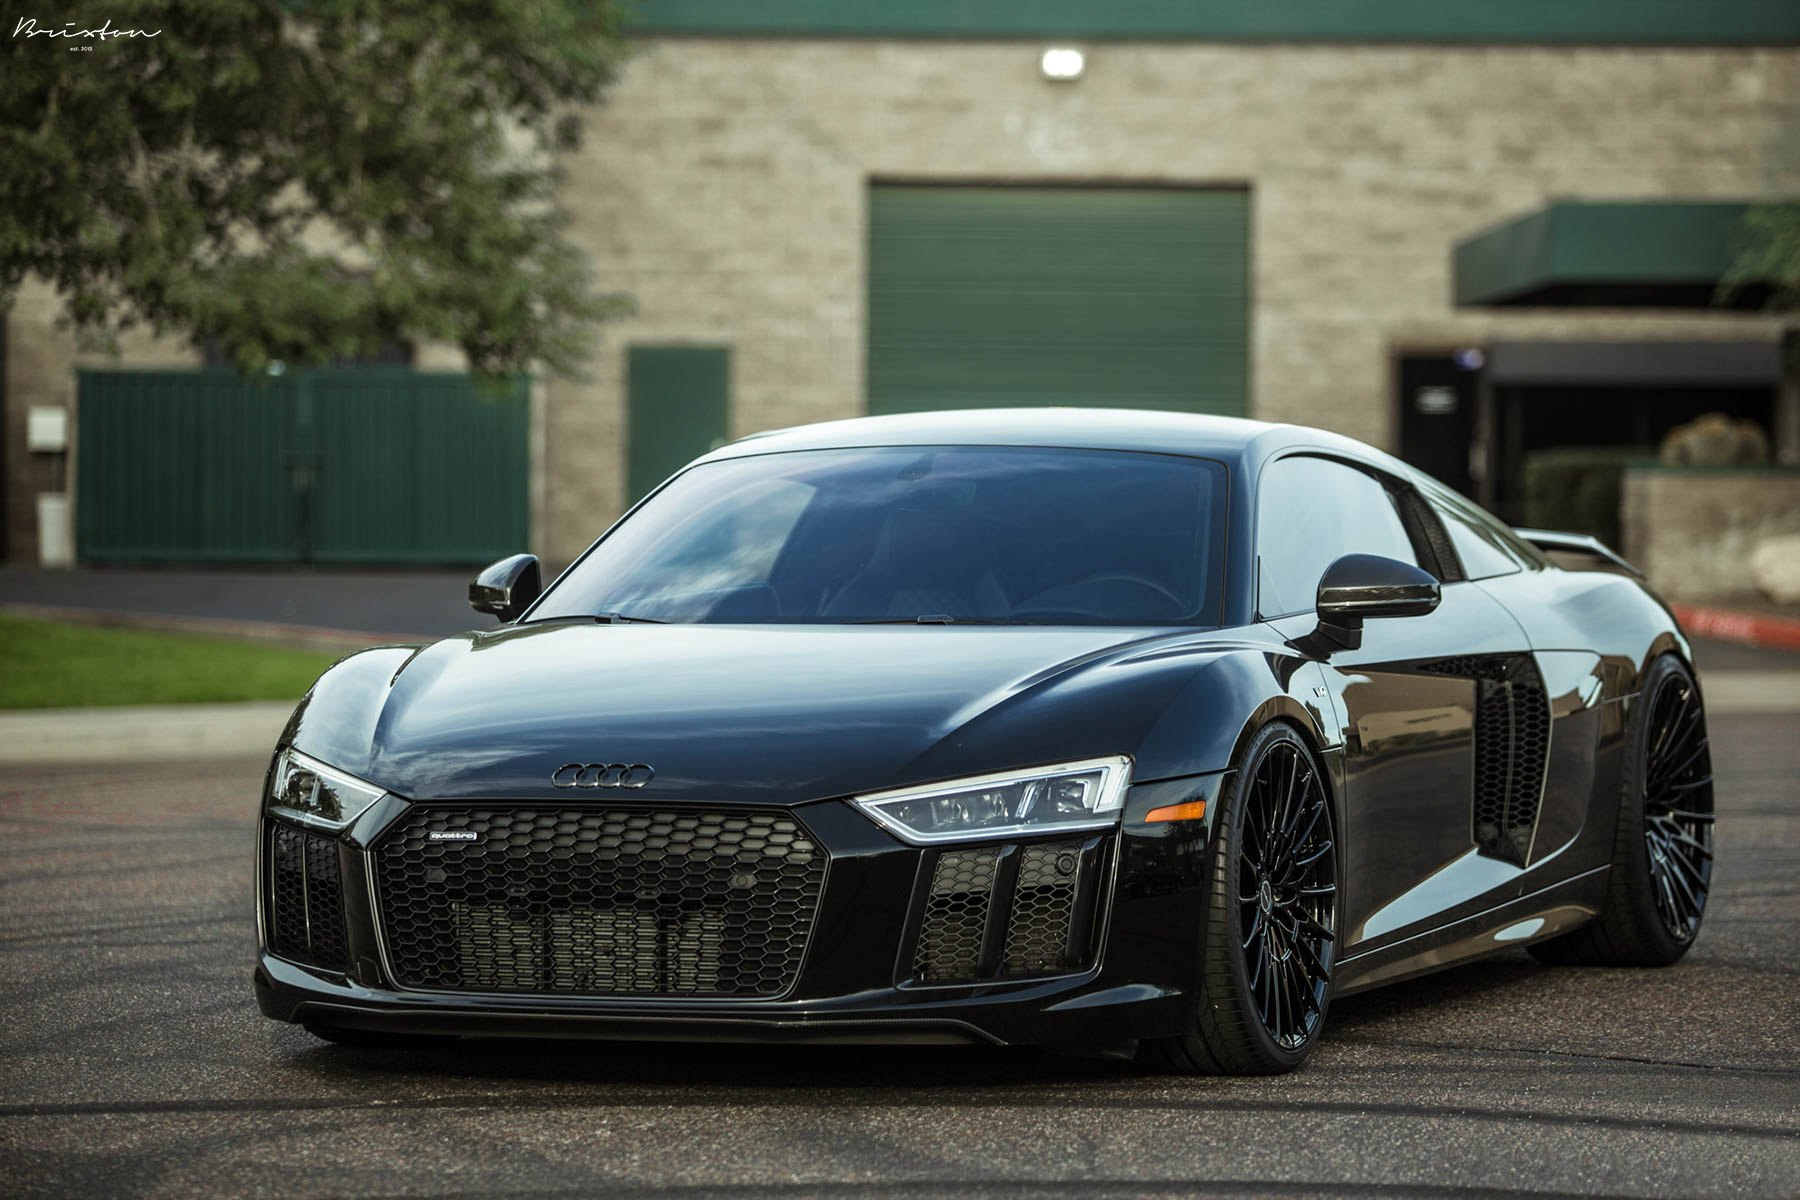 Stealthy Takes Over Black Audi R8 with Custom Parts — CARiD.com Gallery